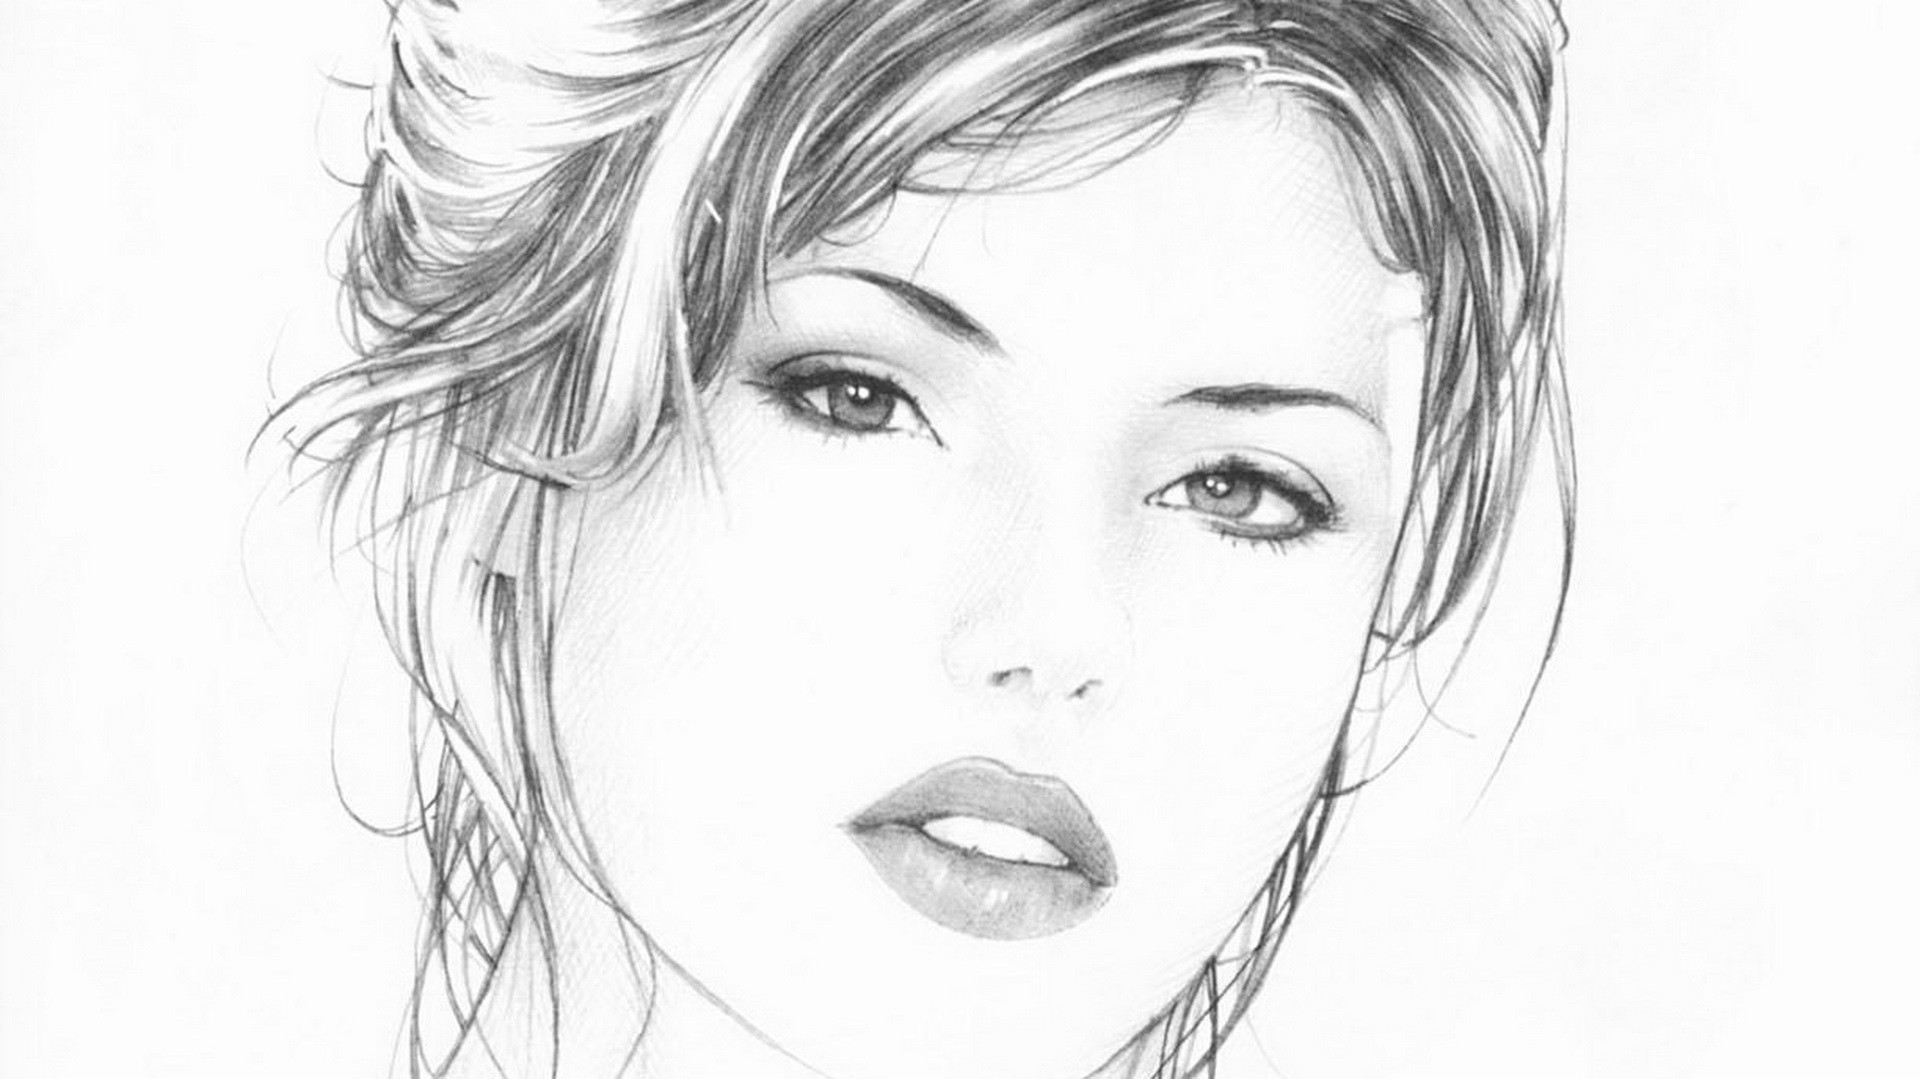 Drawn pice Drawn Backgrounds HD Wallpapers Drawn